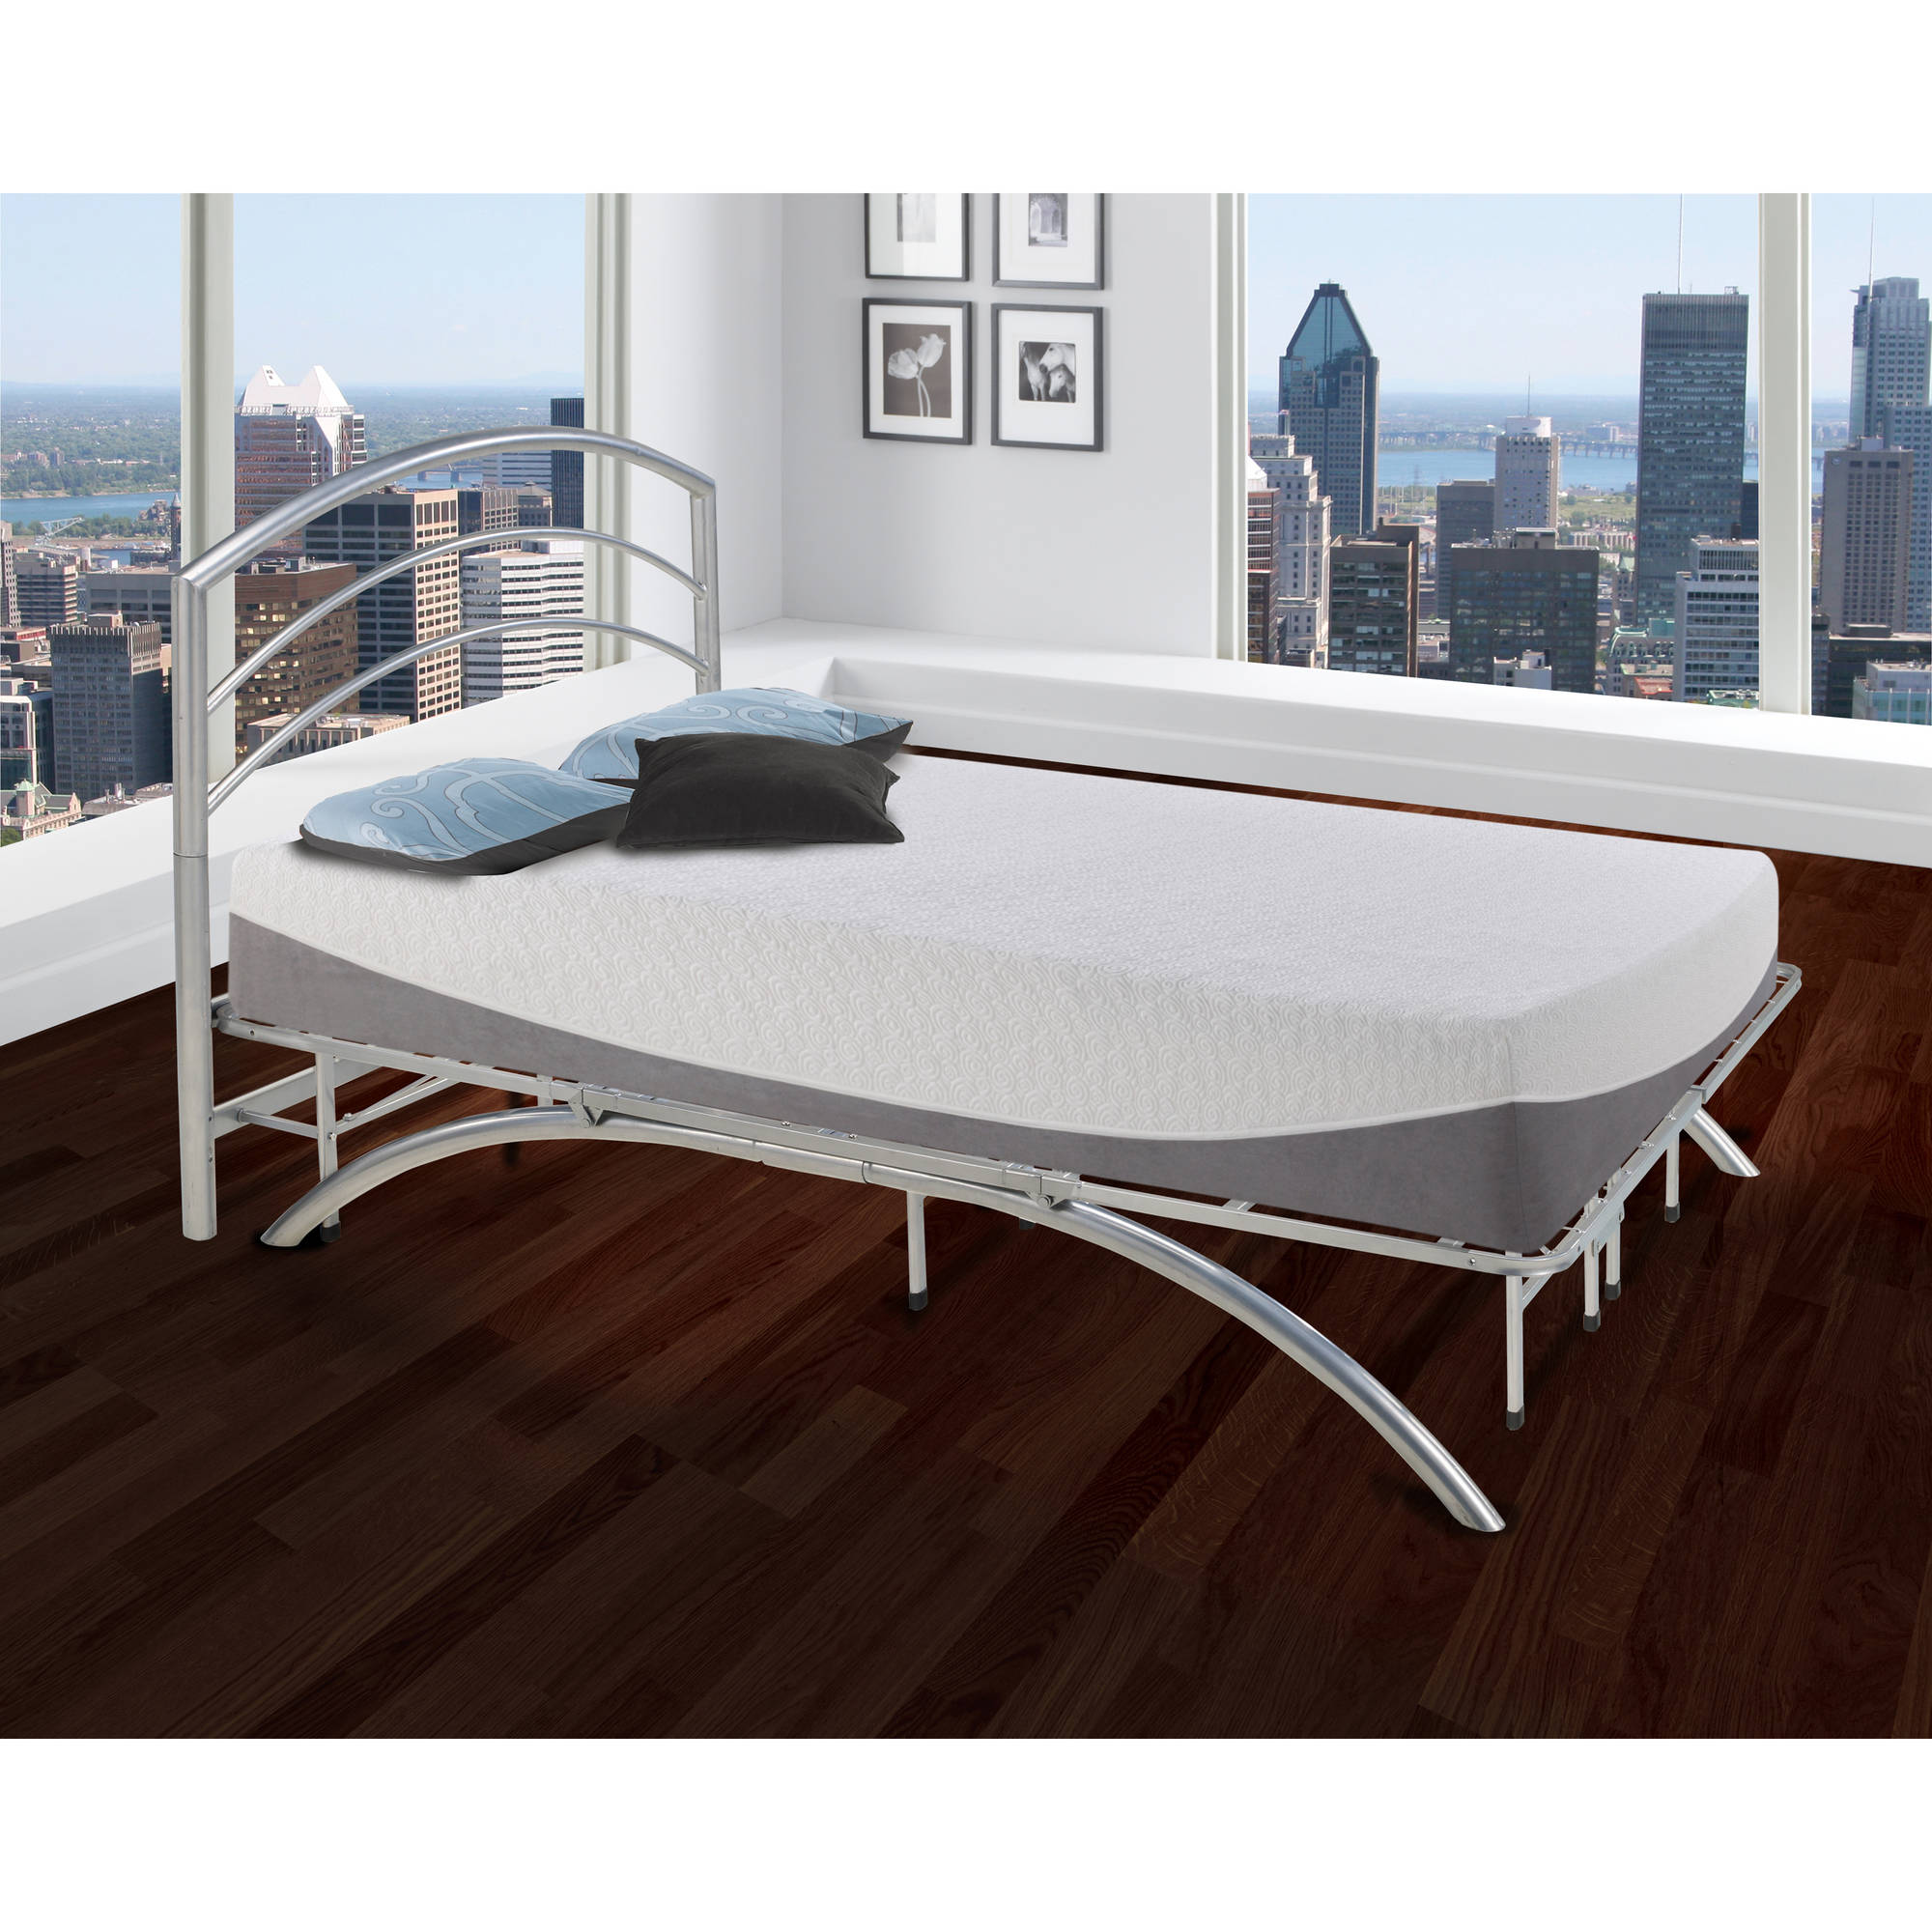 premier ellipse metal headboard walmartcom - Metal Bed Frame With Headboard